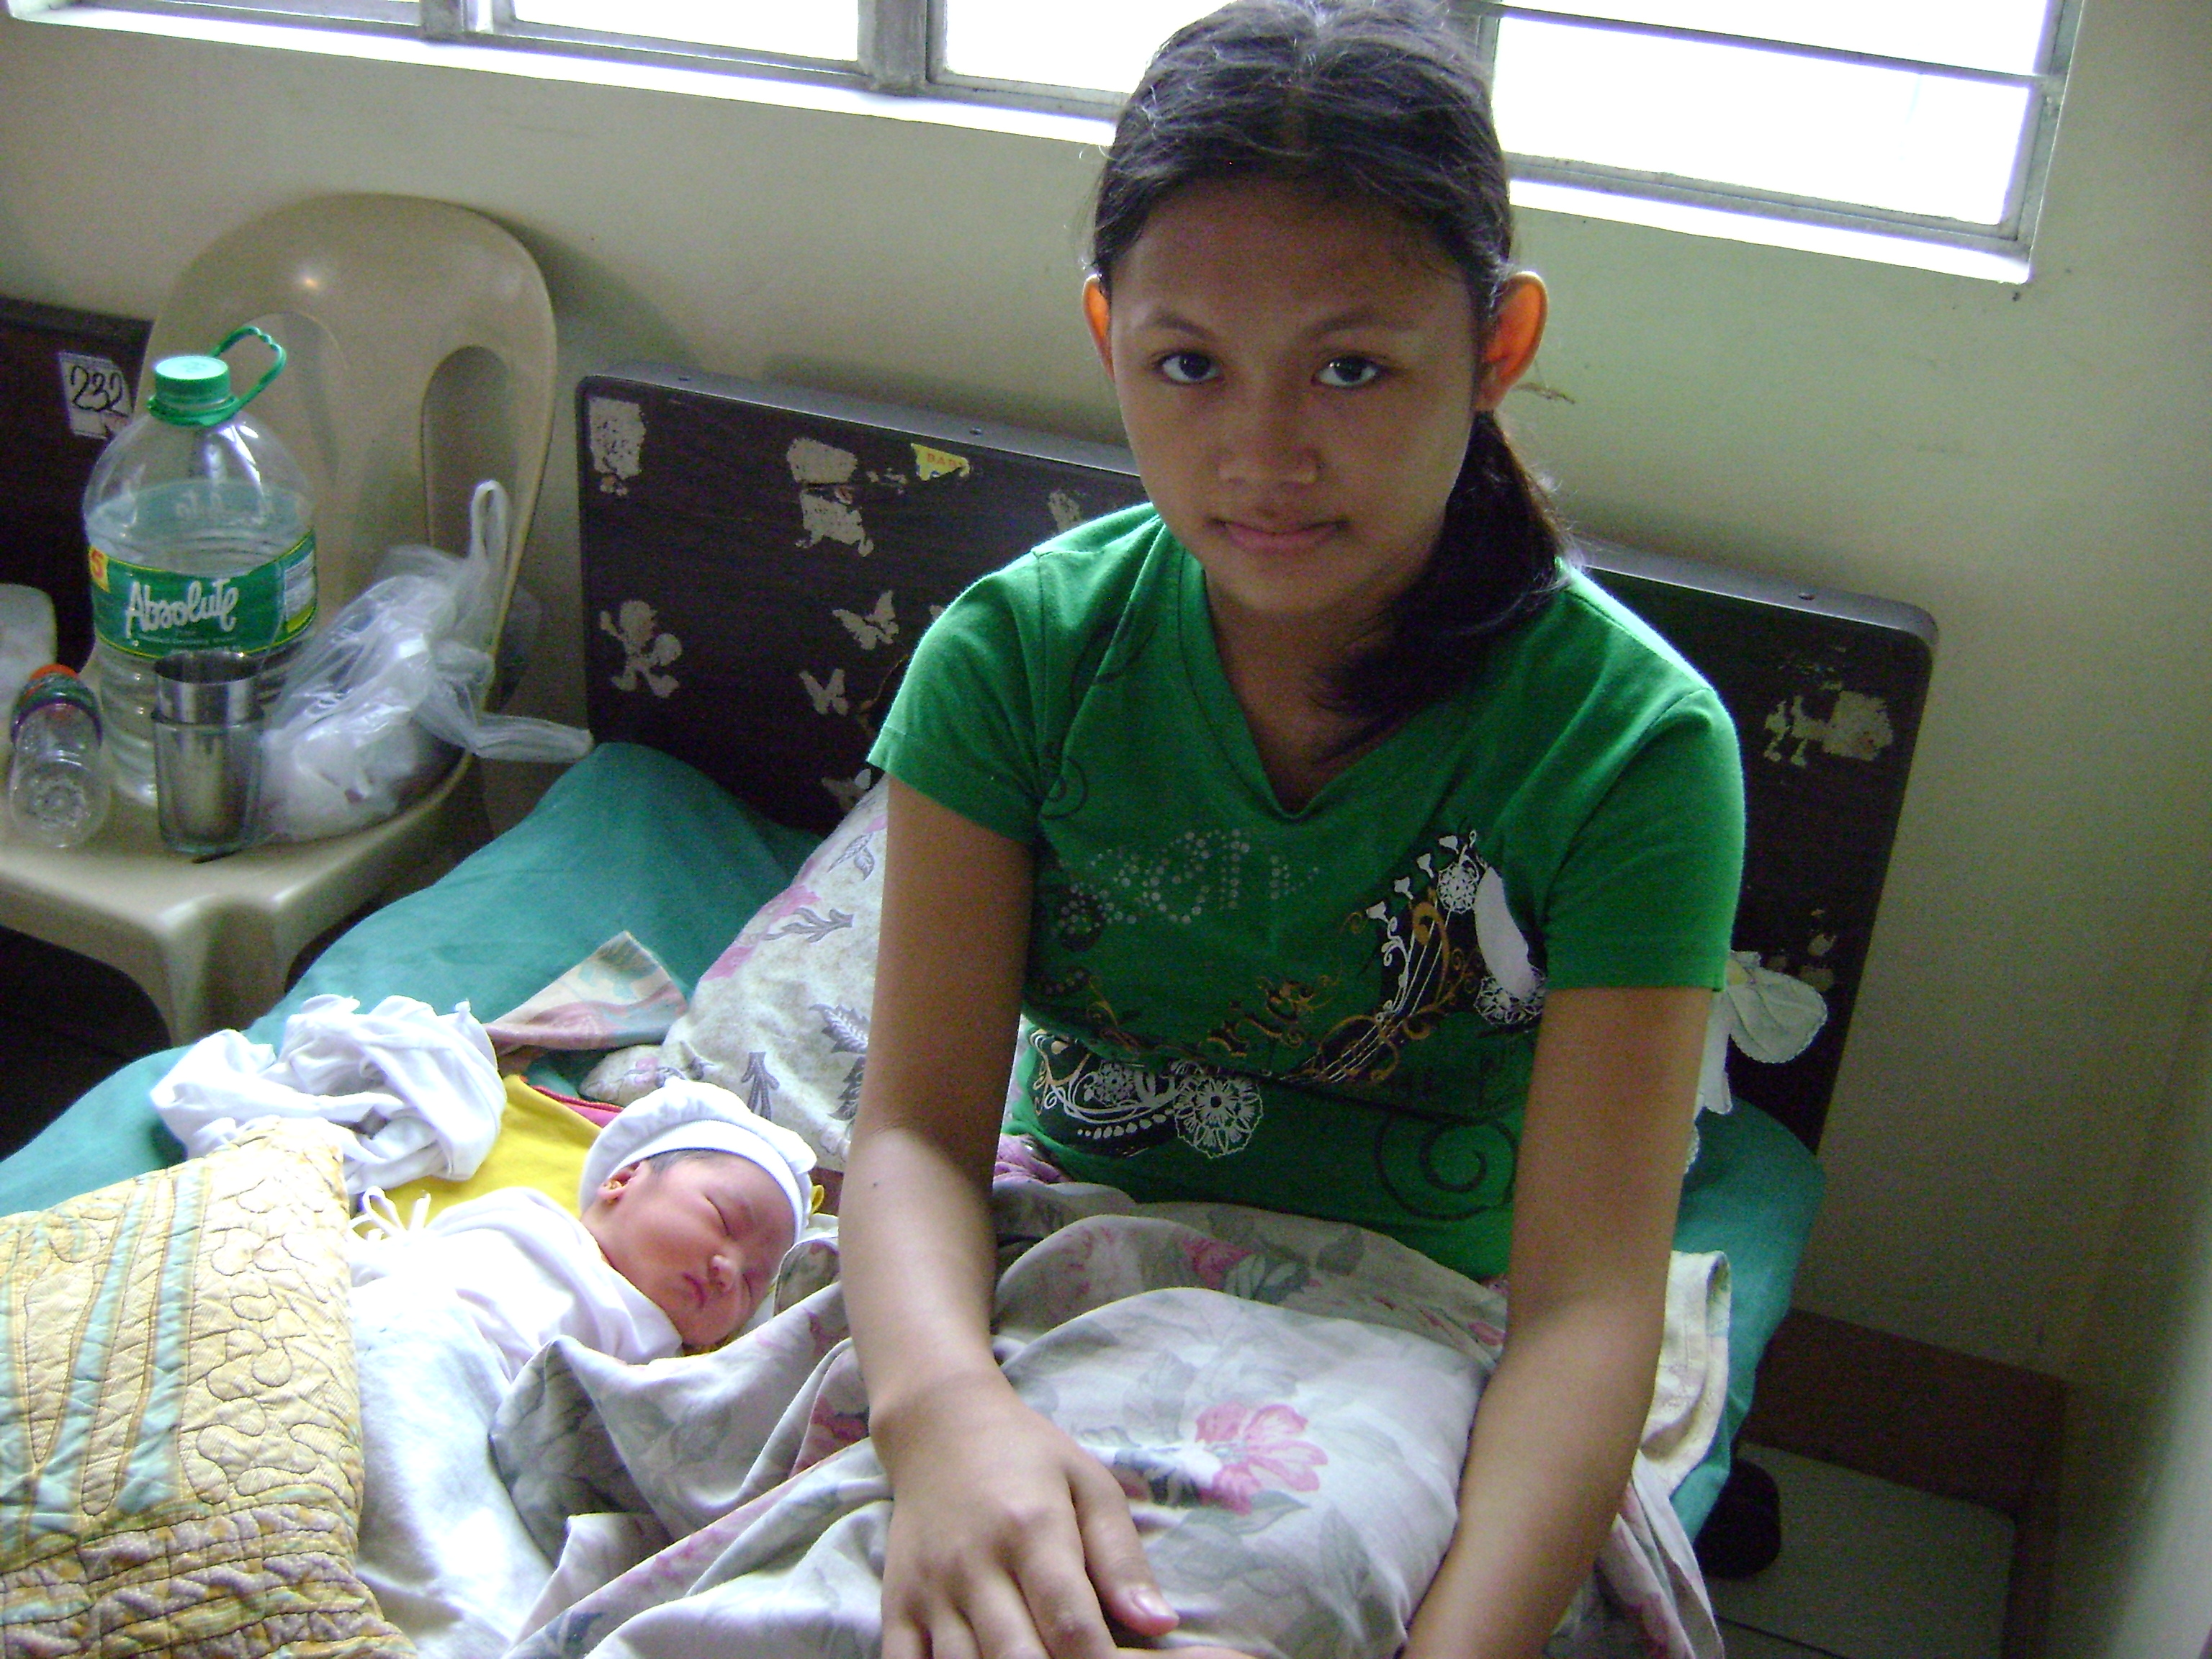 introduction thesis of teenage pregnancy The effects that adolescent pregnancy has on family life by ronette s lehman a research paper submitted in partial fulfillment of the requirements for the.